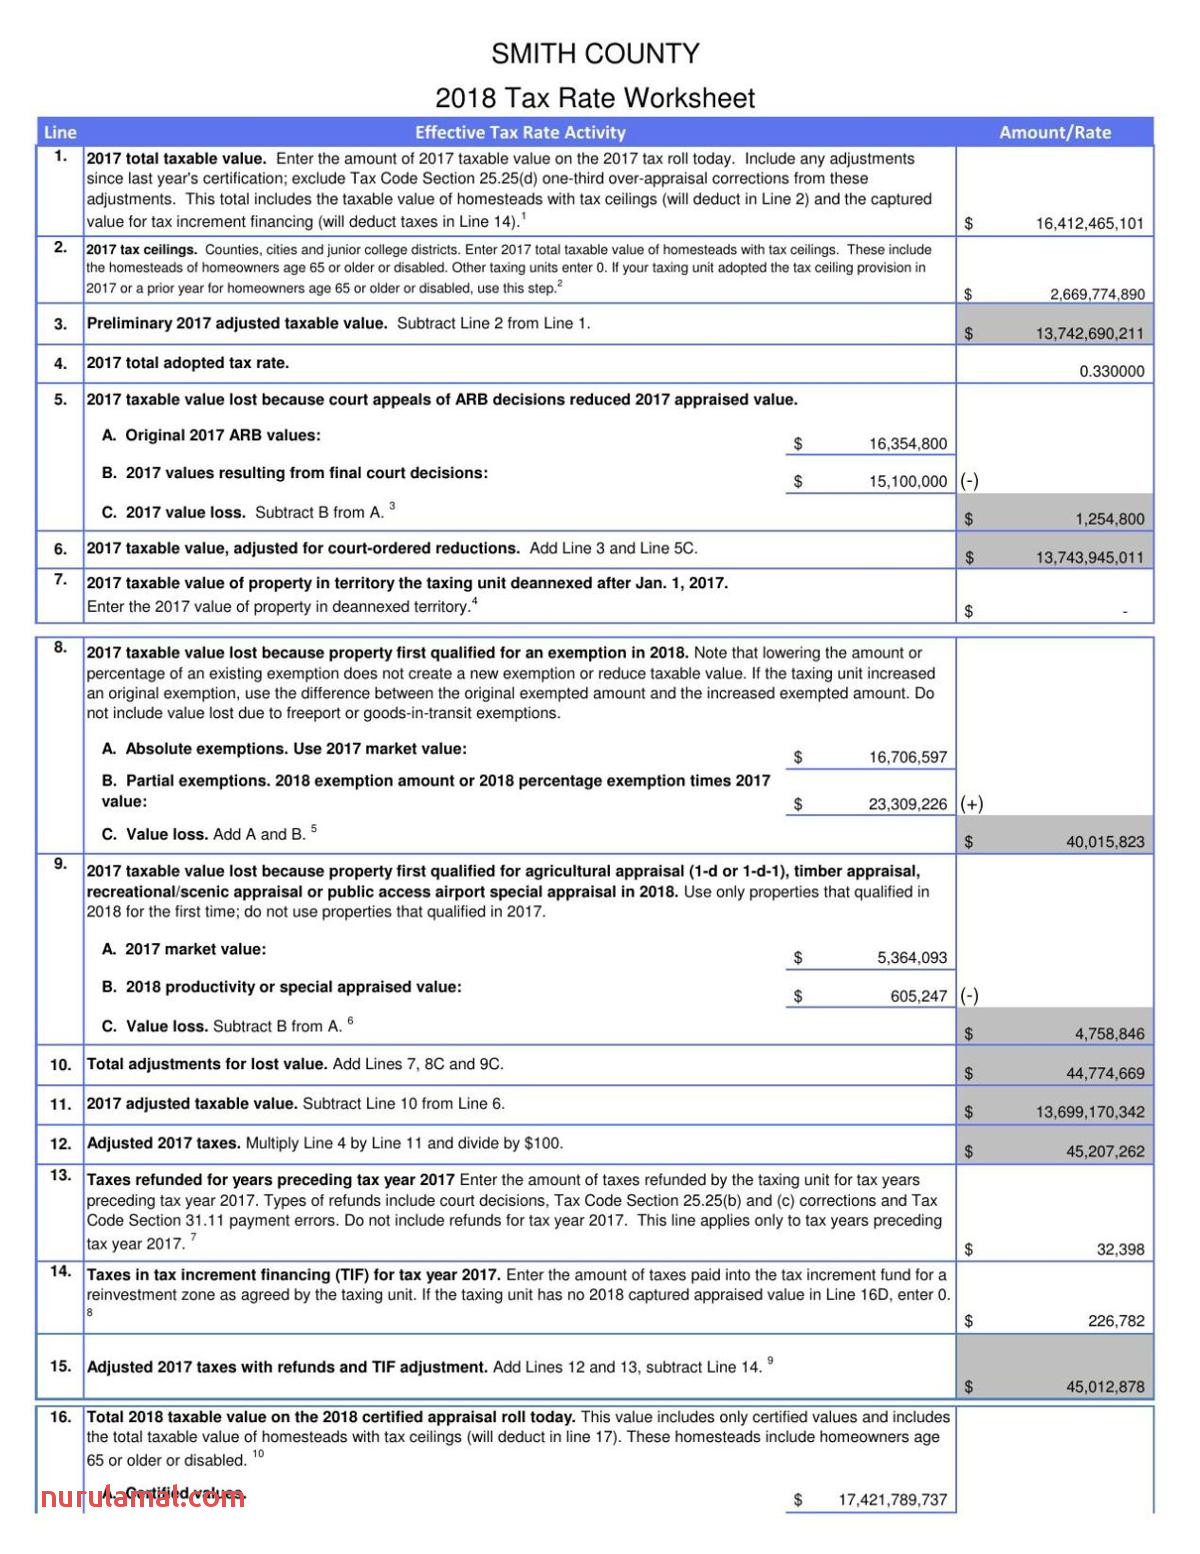 Smith County Scad Tax Worksheet July 30 2018